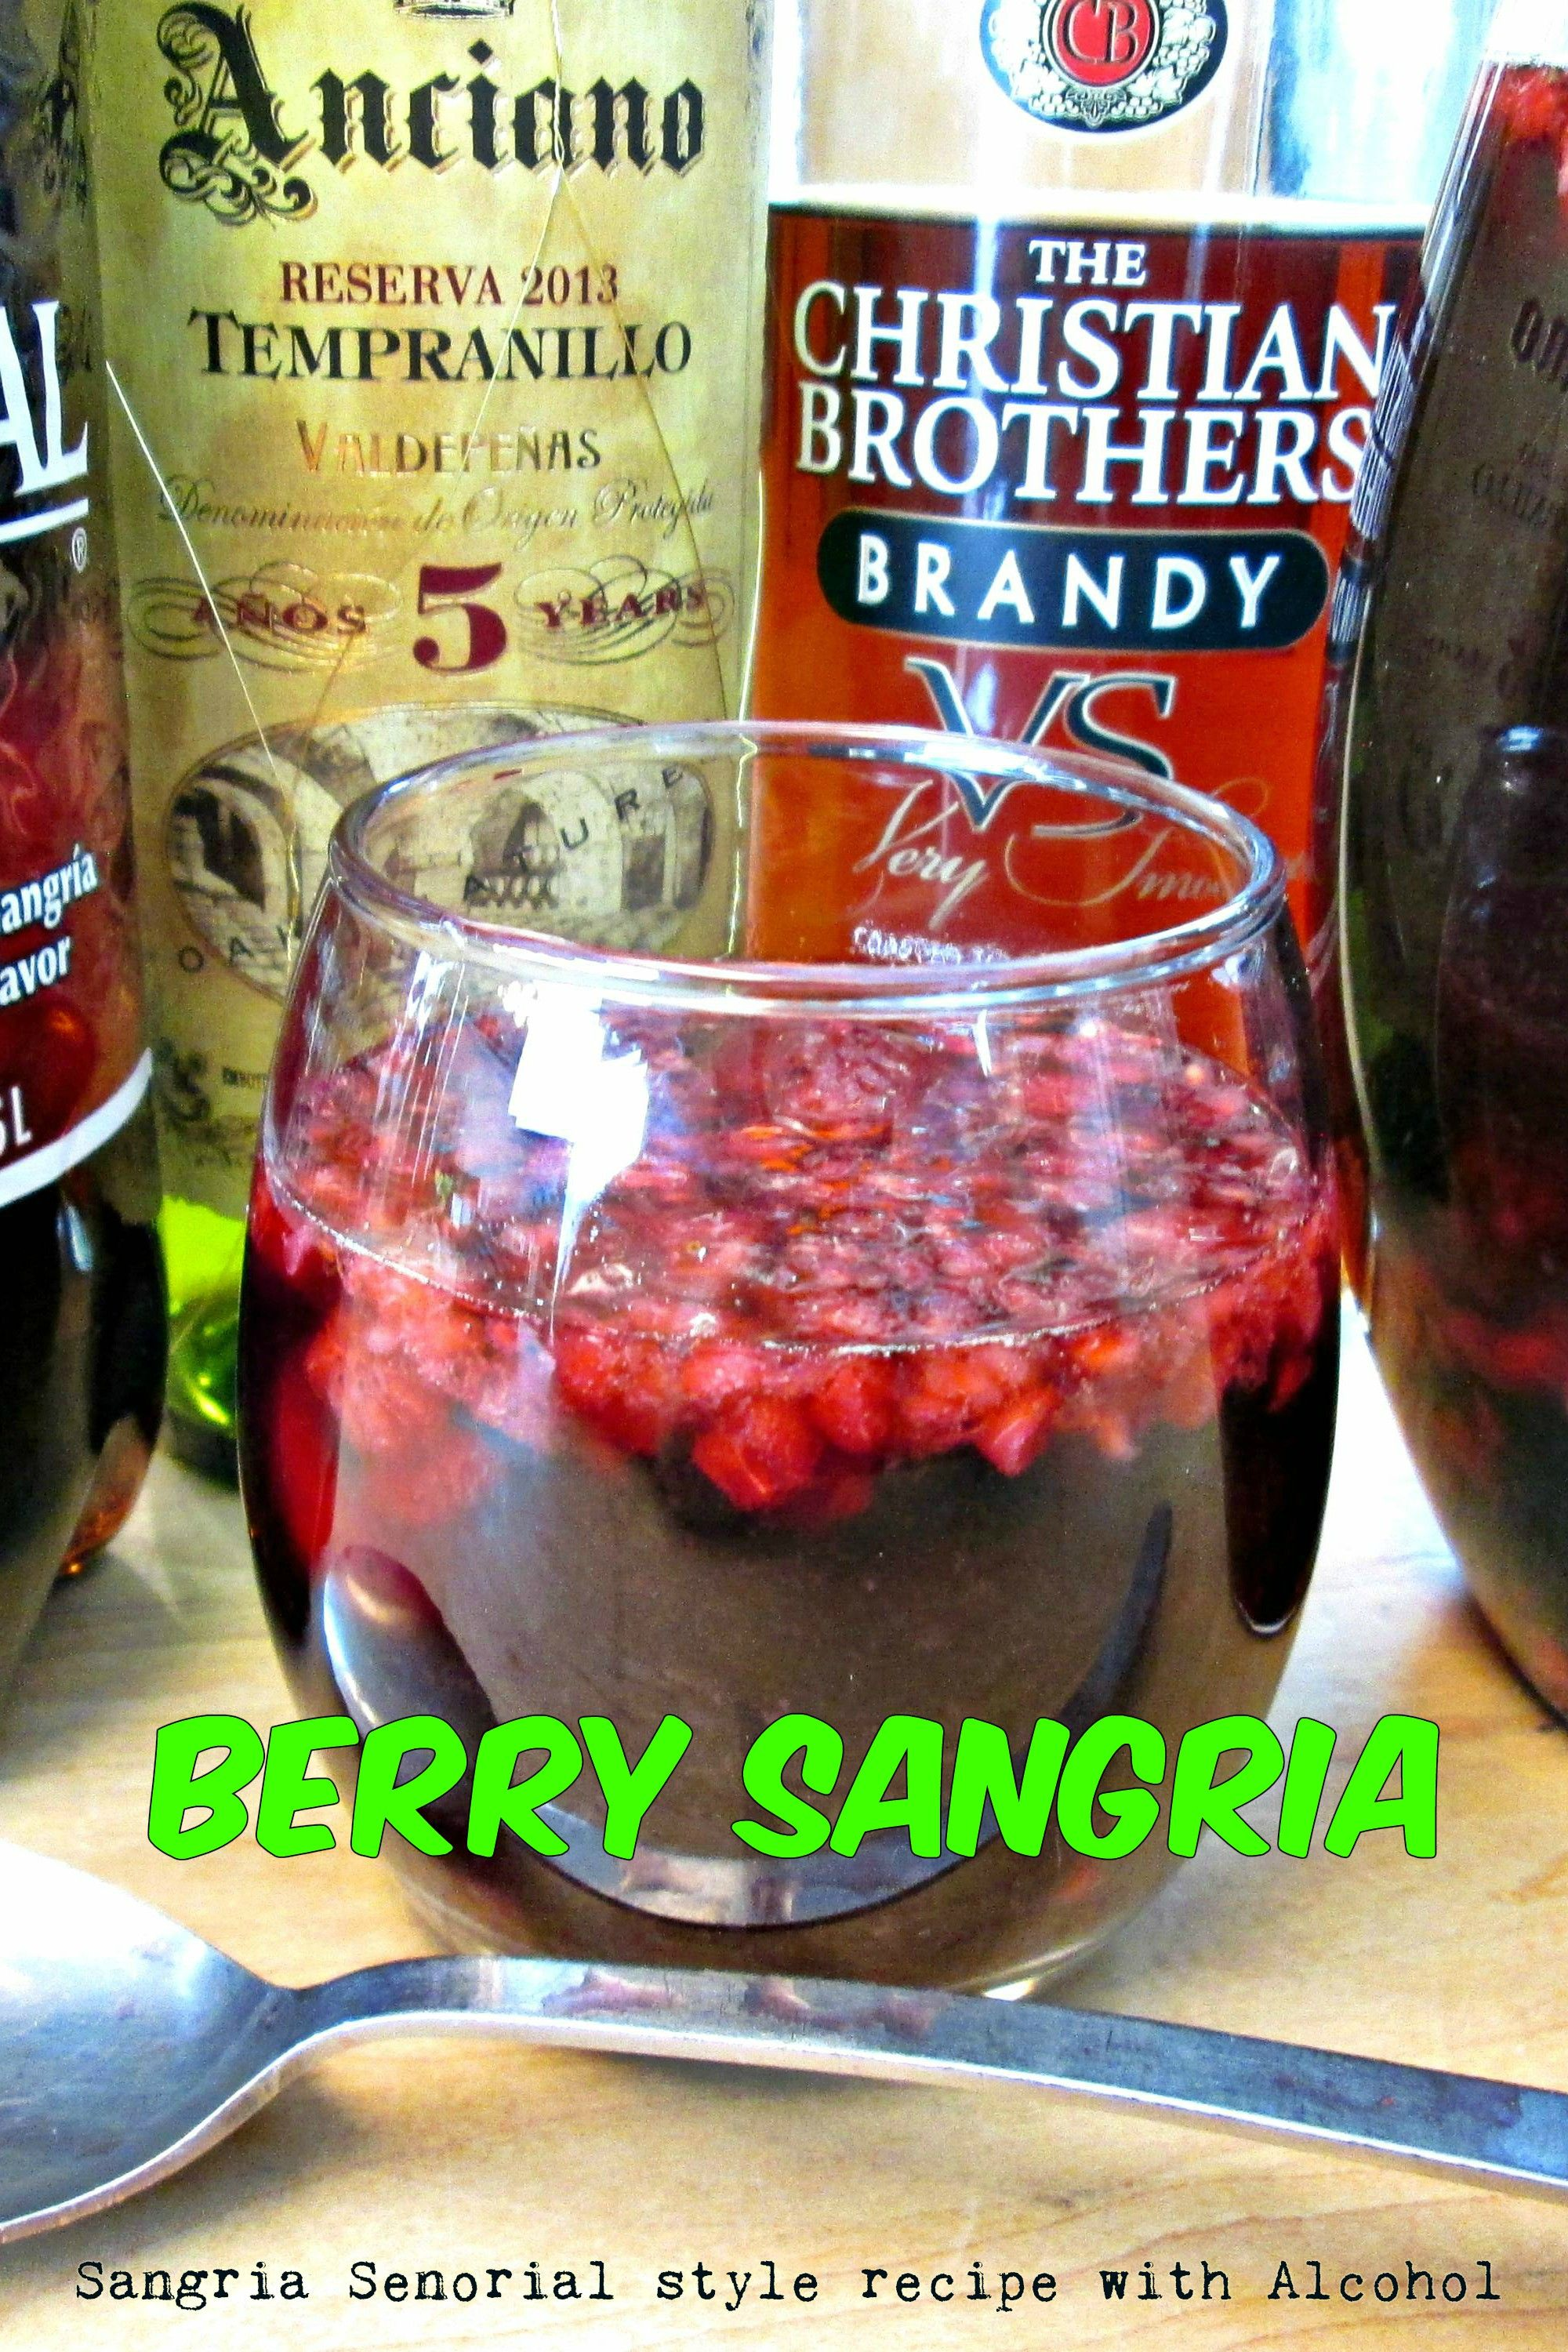 Berry Sangria In 2020 Berry Sangria Recipes Kitchen Recipes